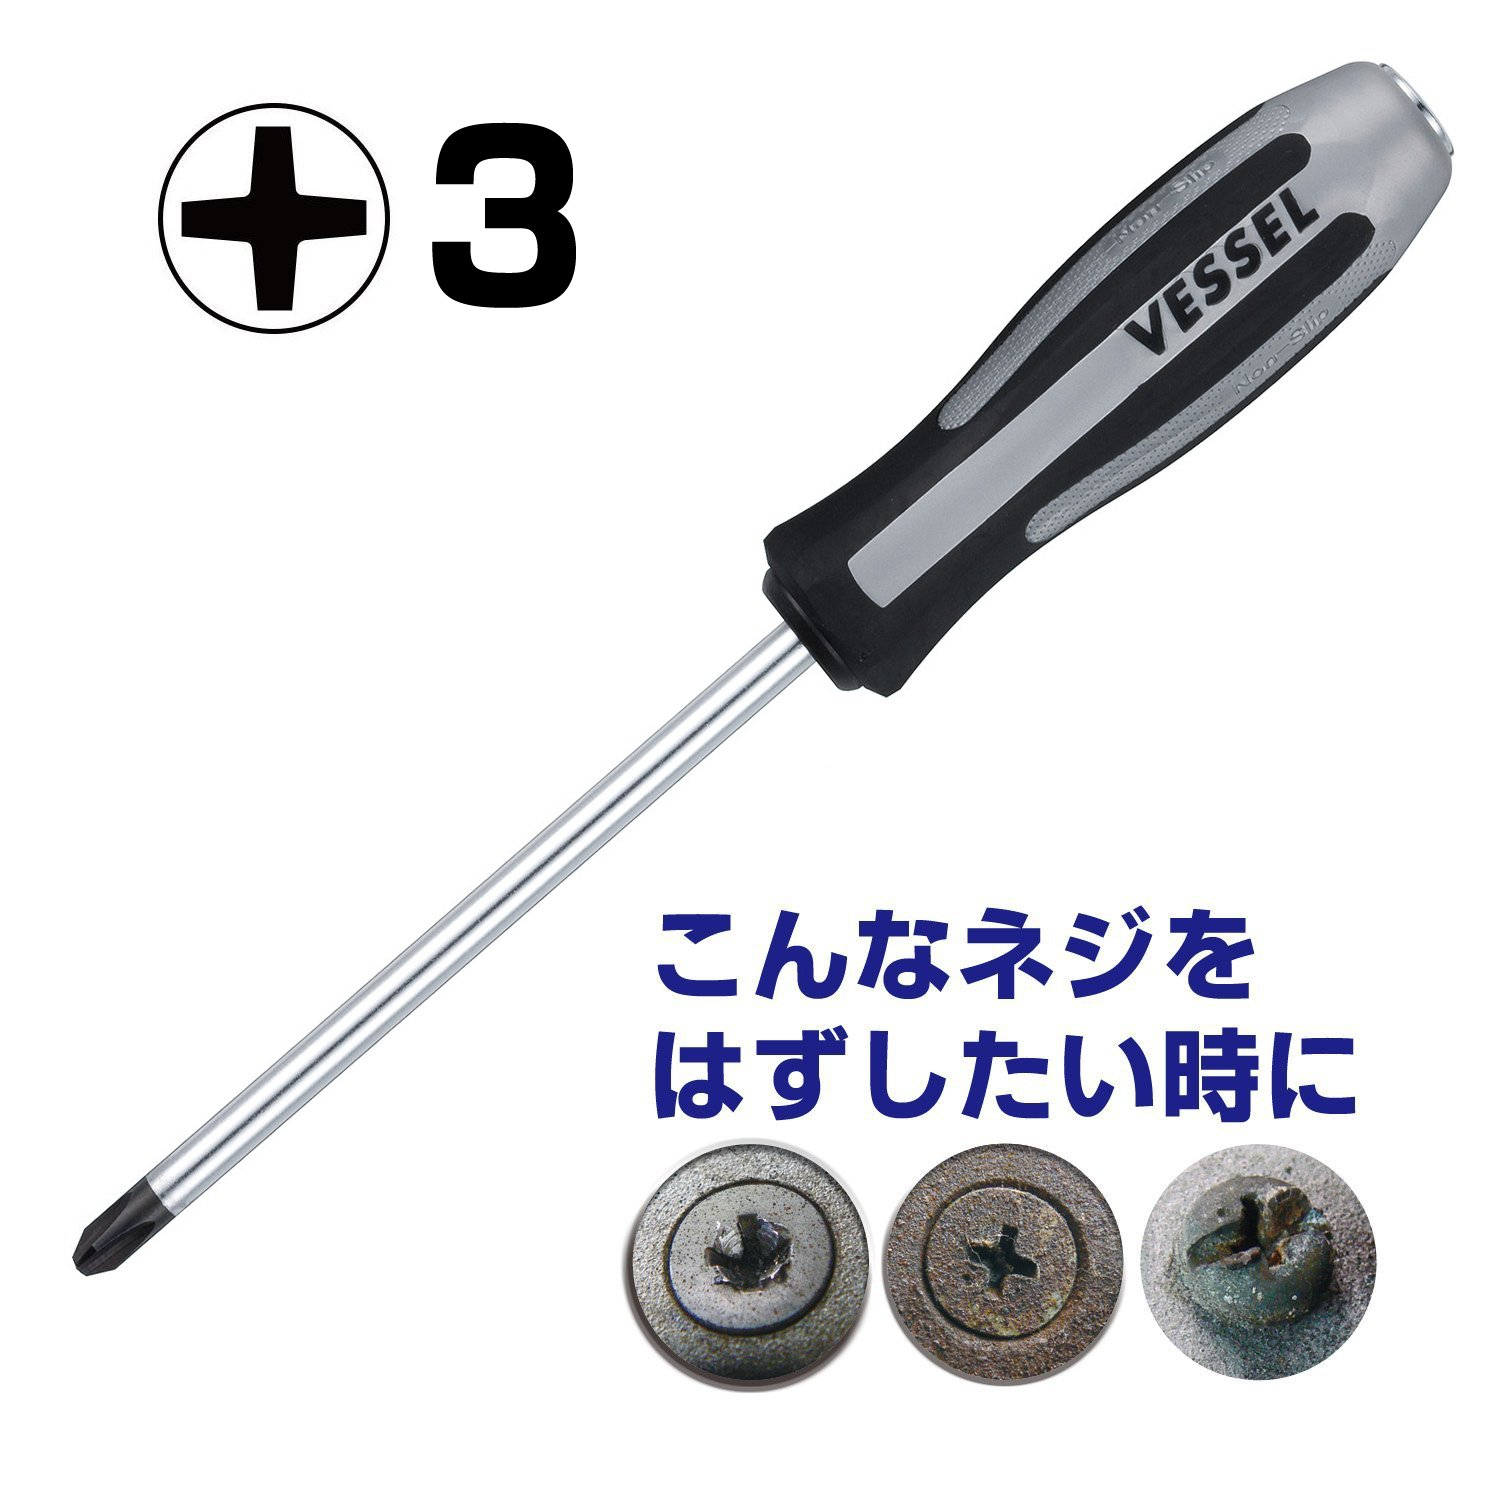 Vessel 125943 908 P3x150 Impacta Screwdriver